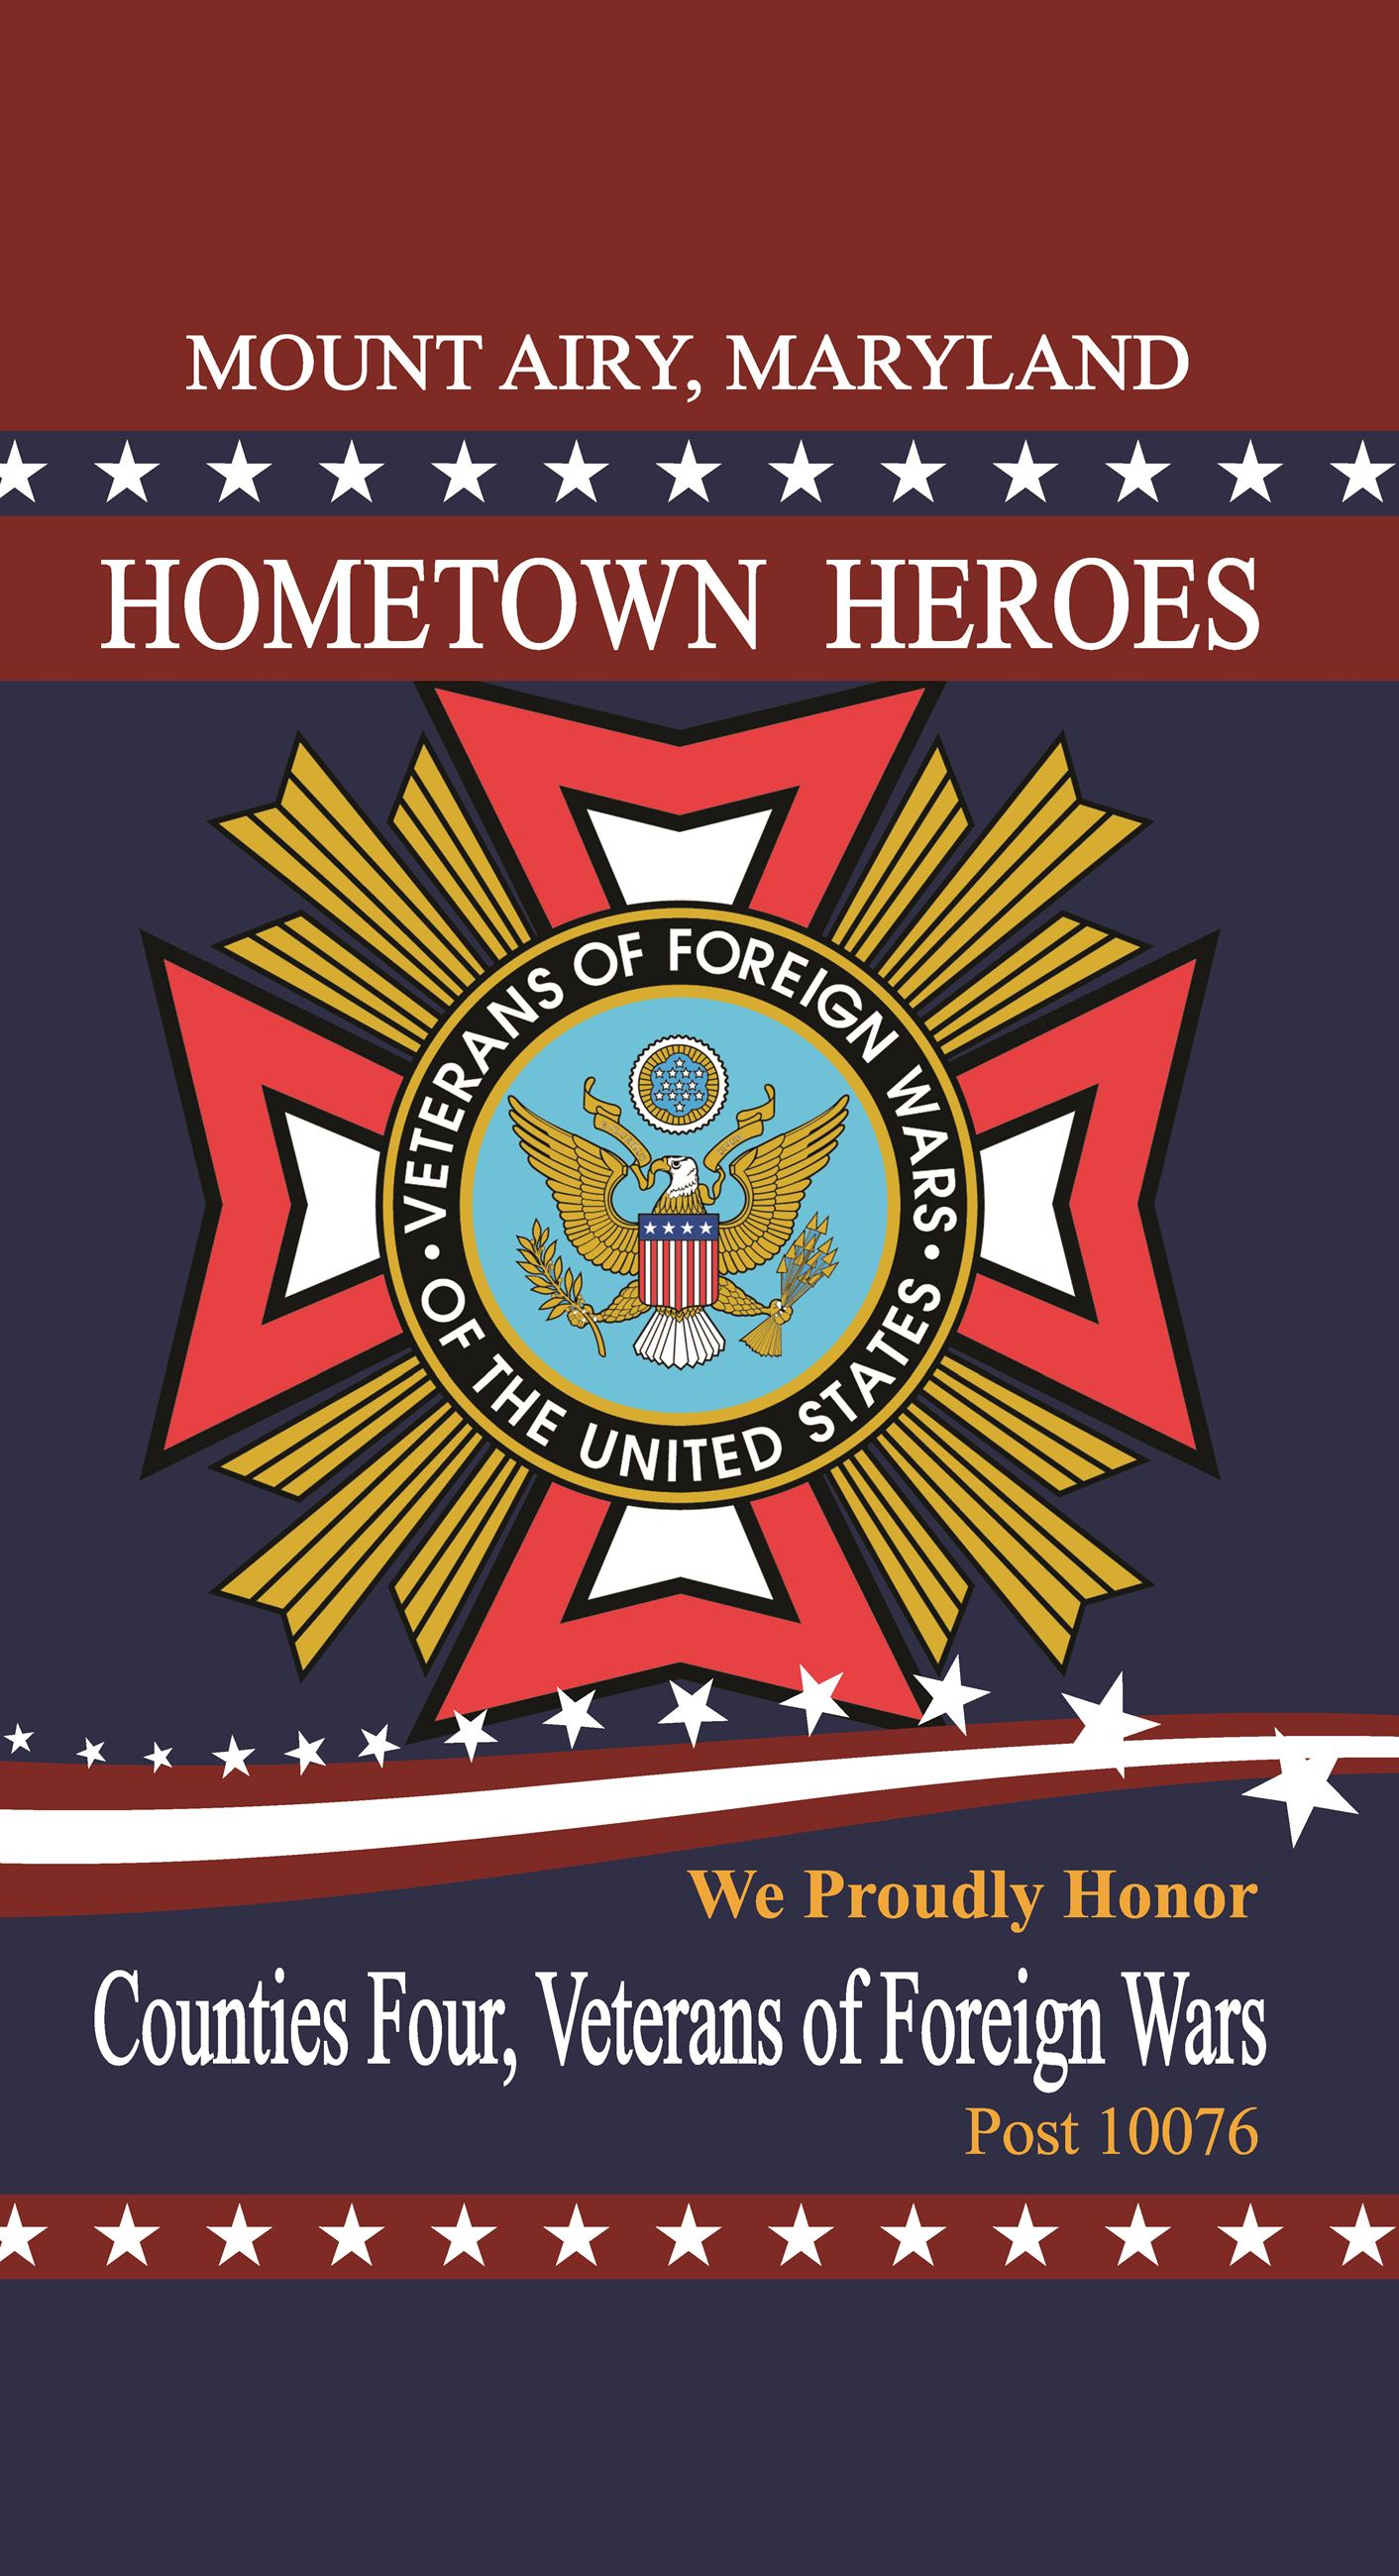 Counties4VFW10076_MtAiryHeroes-Flag-24x44-Proof001